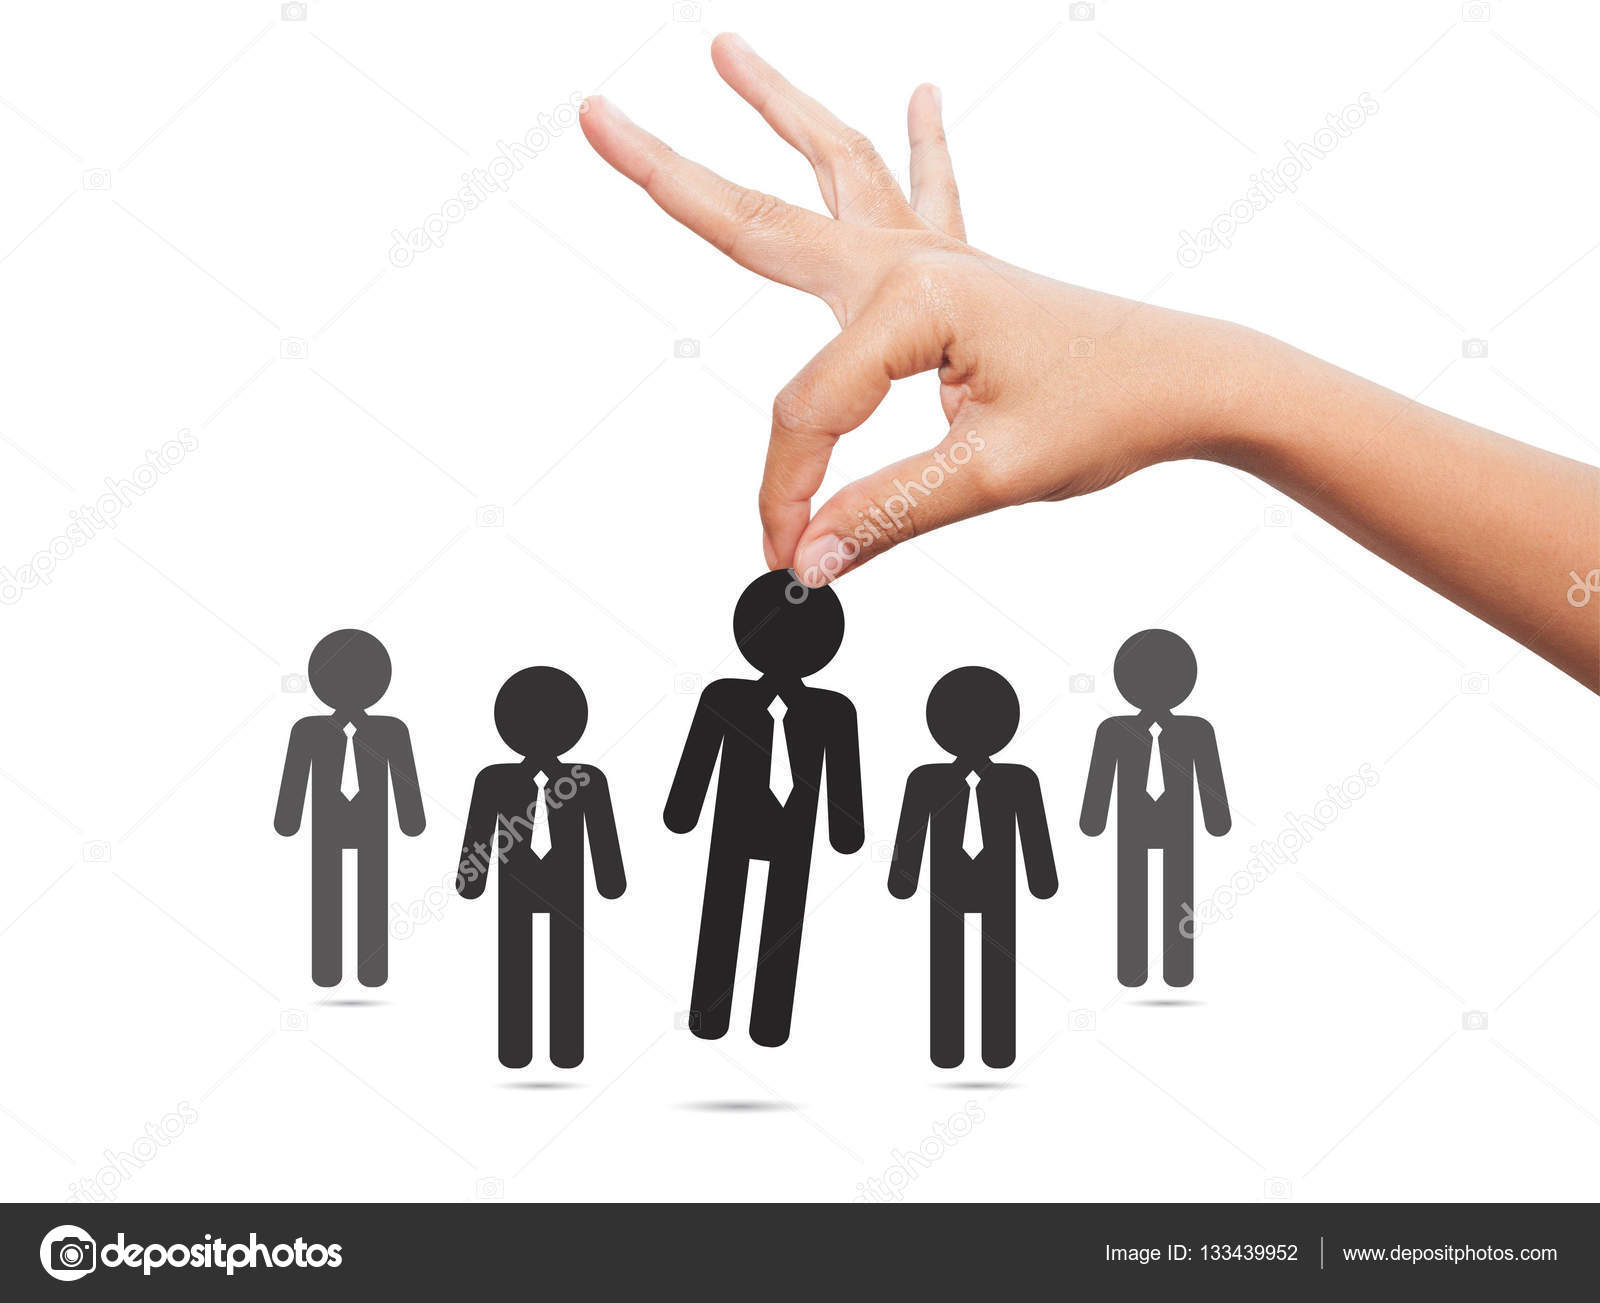 choosing the best candidate concept for the job concept hand pi choosing the best candidate concept for the job concept hand pi stock image